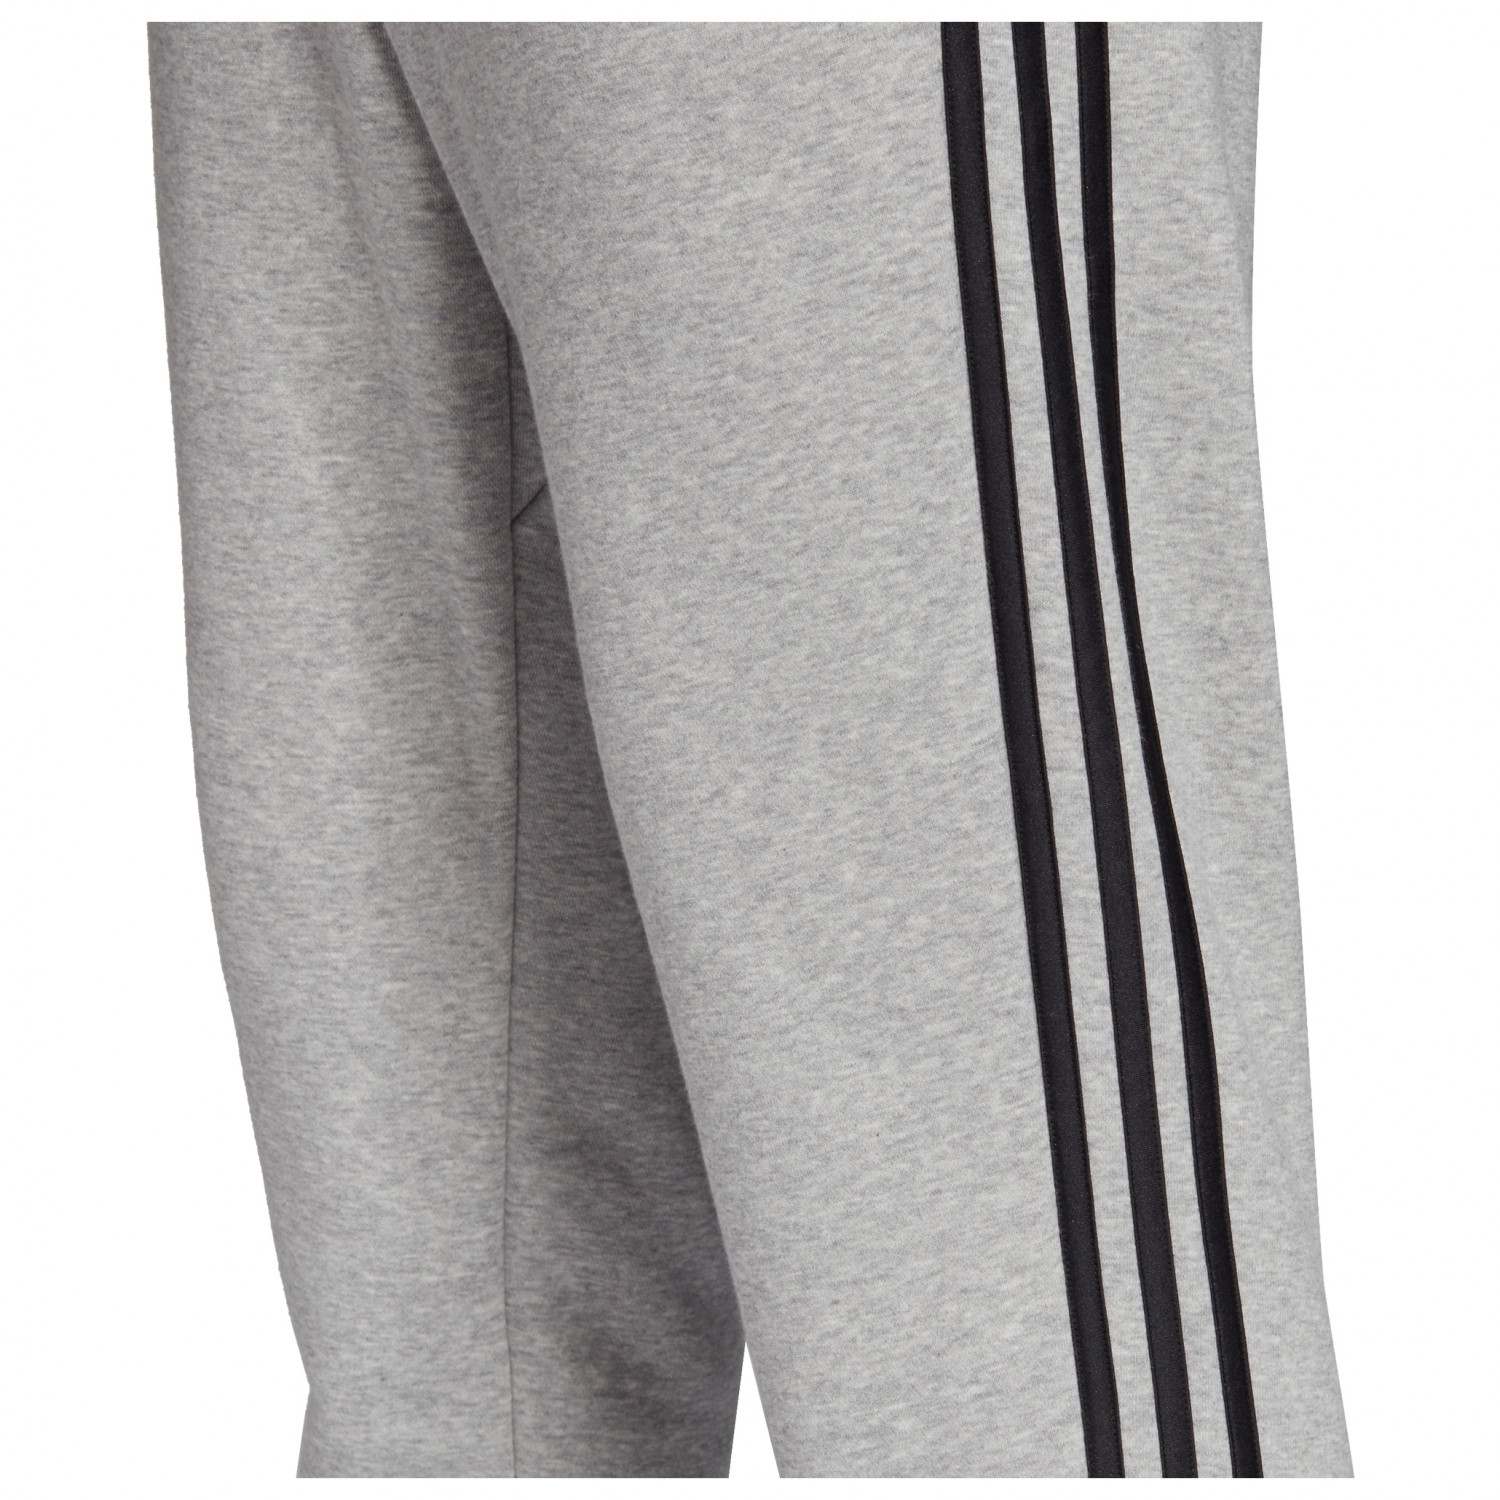 adidas Essentials 3 Streifen Tapered Cuffed Hose Trainingshose Medium Grey Heather Black MGH Solid Grey | M